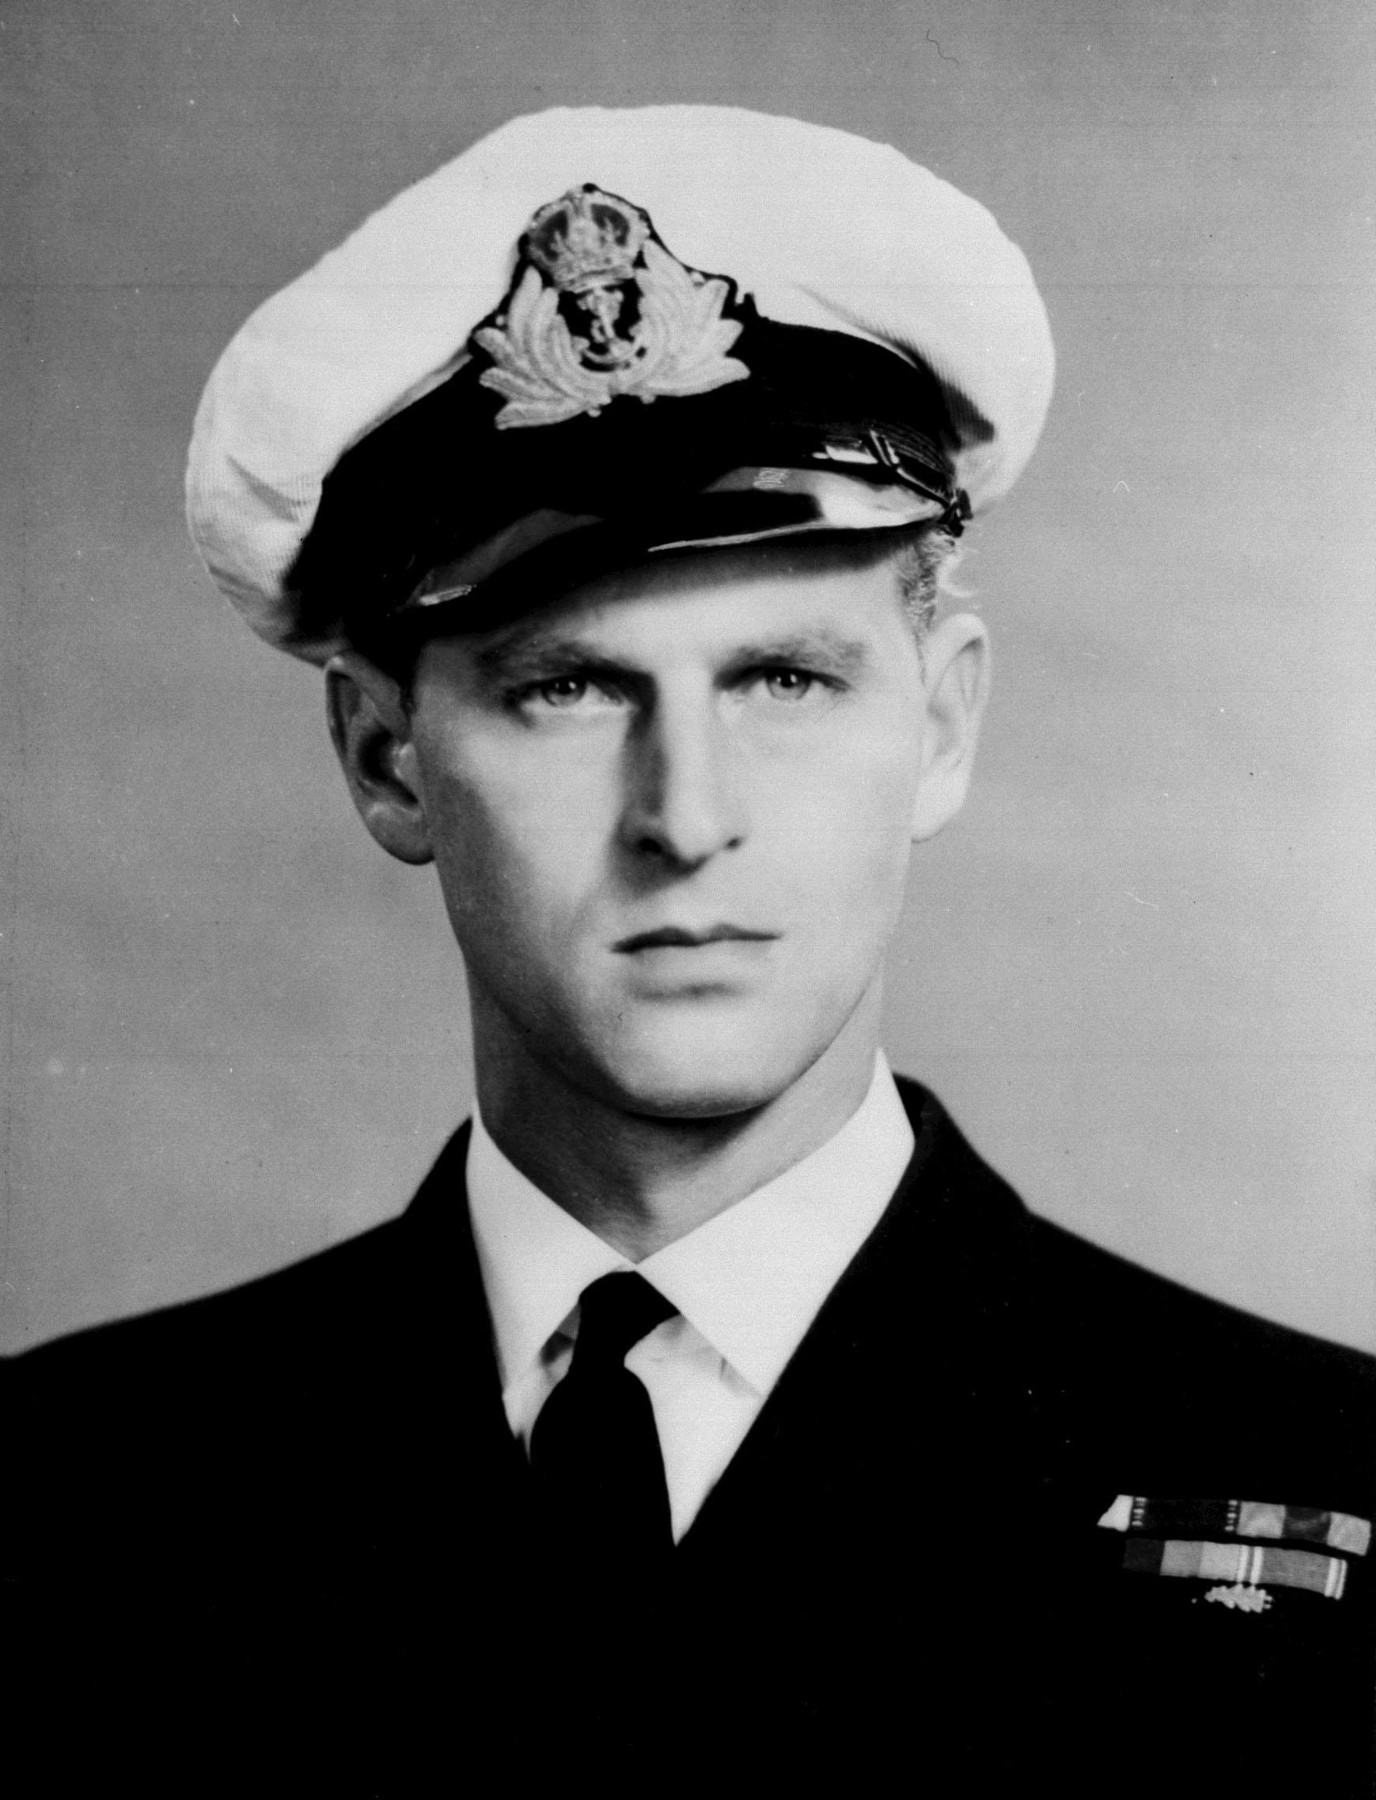 File photo dated 05/12/46 of the Duke of Edinburgh, when he was a serving officer in the Royal Navy. The Duke of Edinburgh celebrates his 99th birthday Wednesday.,Image: 529367930, License: Rights-managed, Restrictions: FILE PHOTO, Model Release: no, Credit line: PA / PA Images / Profimedia